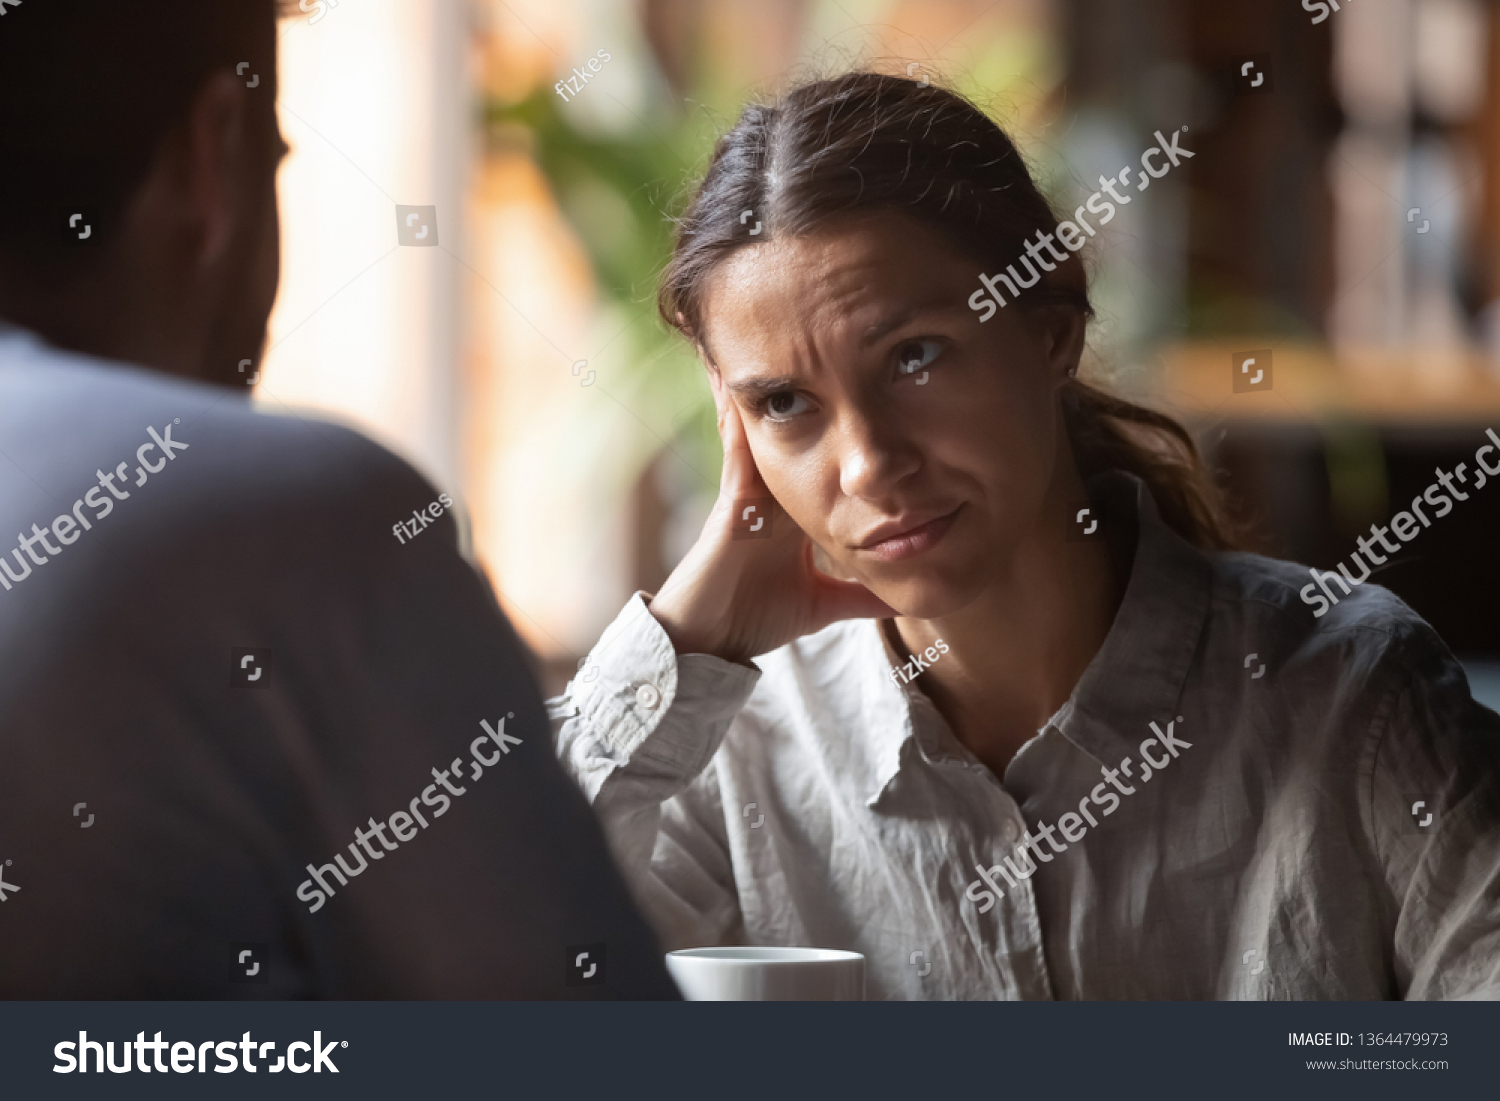 Focus on mixed race irritated young female sitting in cafeteria on speed dating with boring male rear view. Unsuccessful unlucky romantic date failure, bad first impression and poor companion concept #1364479973